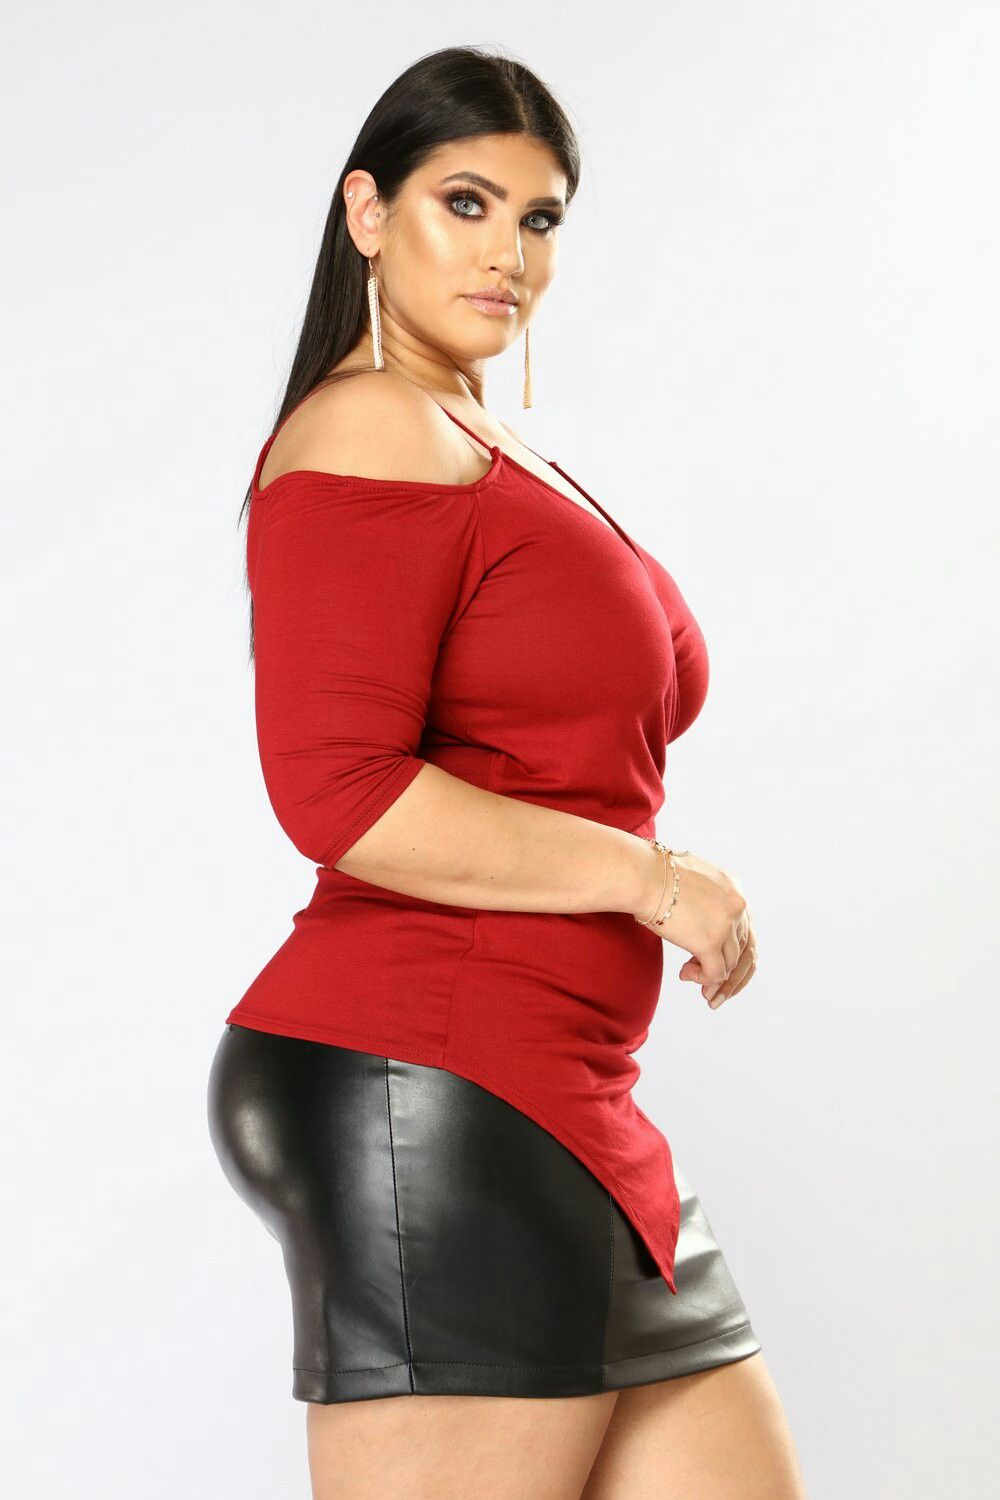 2635c7fe6bc Plus Size Model · Sexy Curves · S B Ashly Graham, Model Outfits, Curvy  Models, Clothes For Women, Boobs,